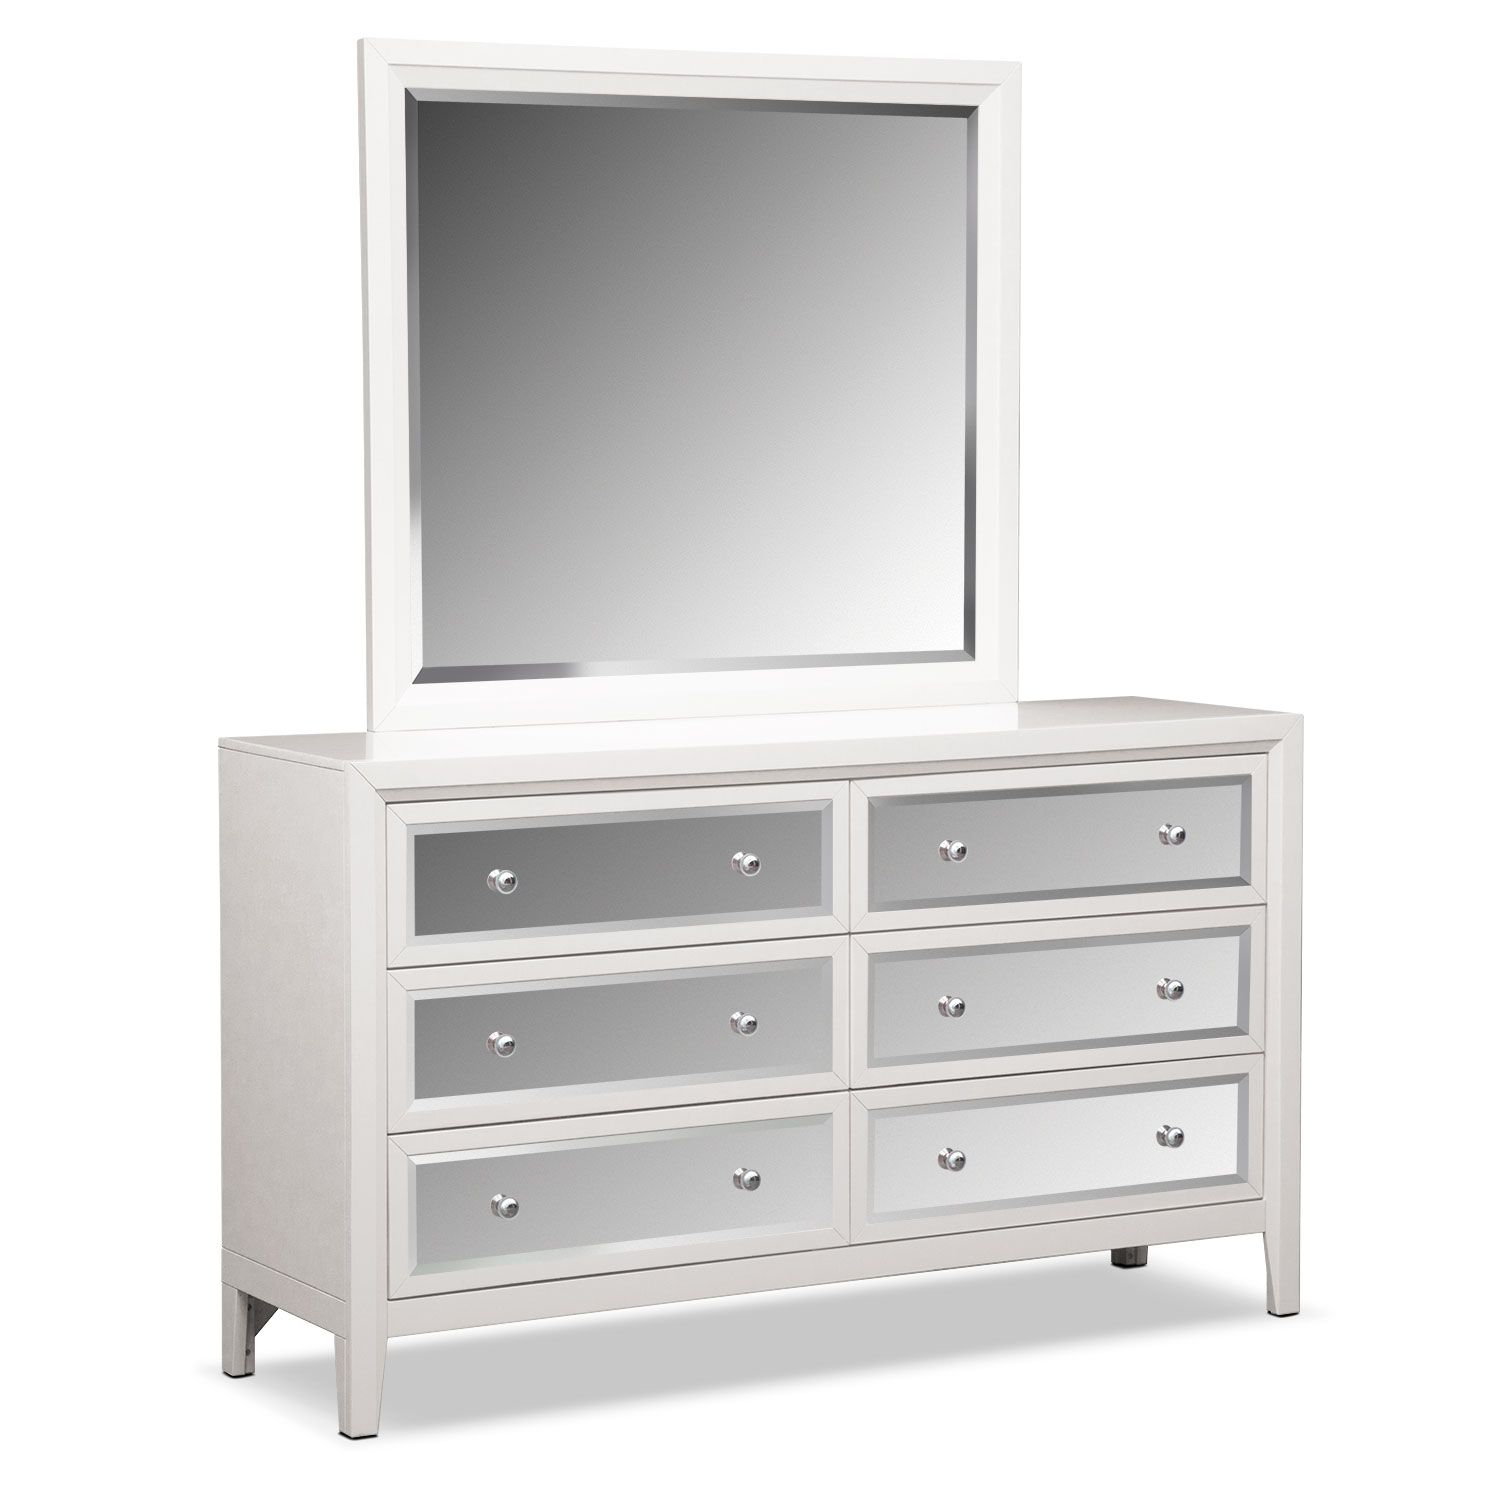 mirror matching xiorex with line life white black fancy home phantom and nightstand dresser inside set cool